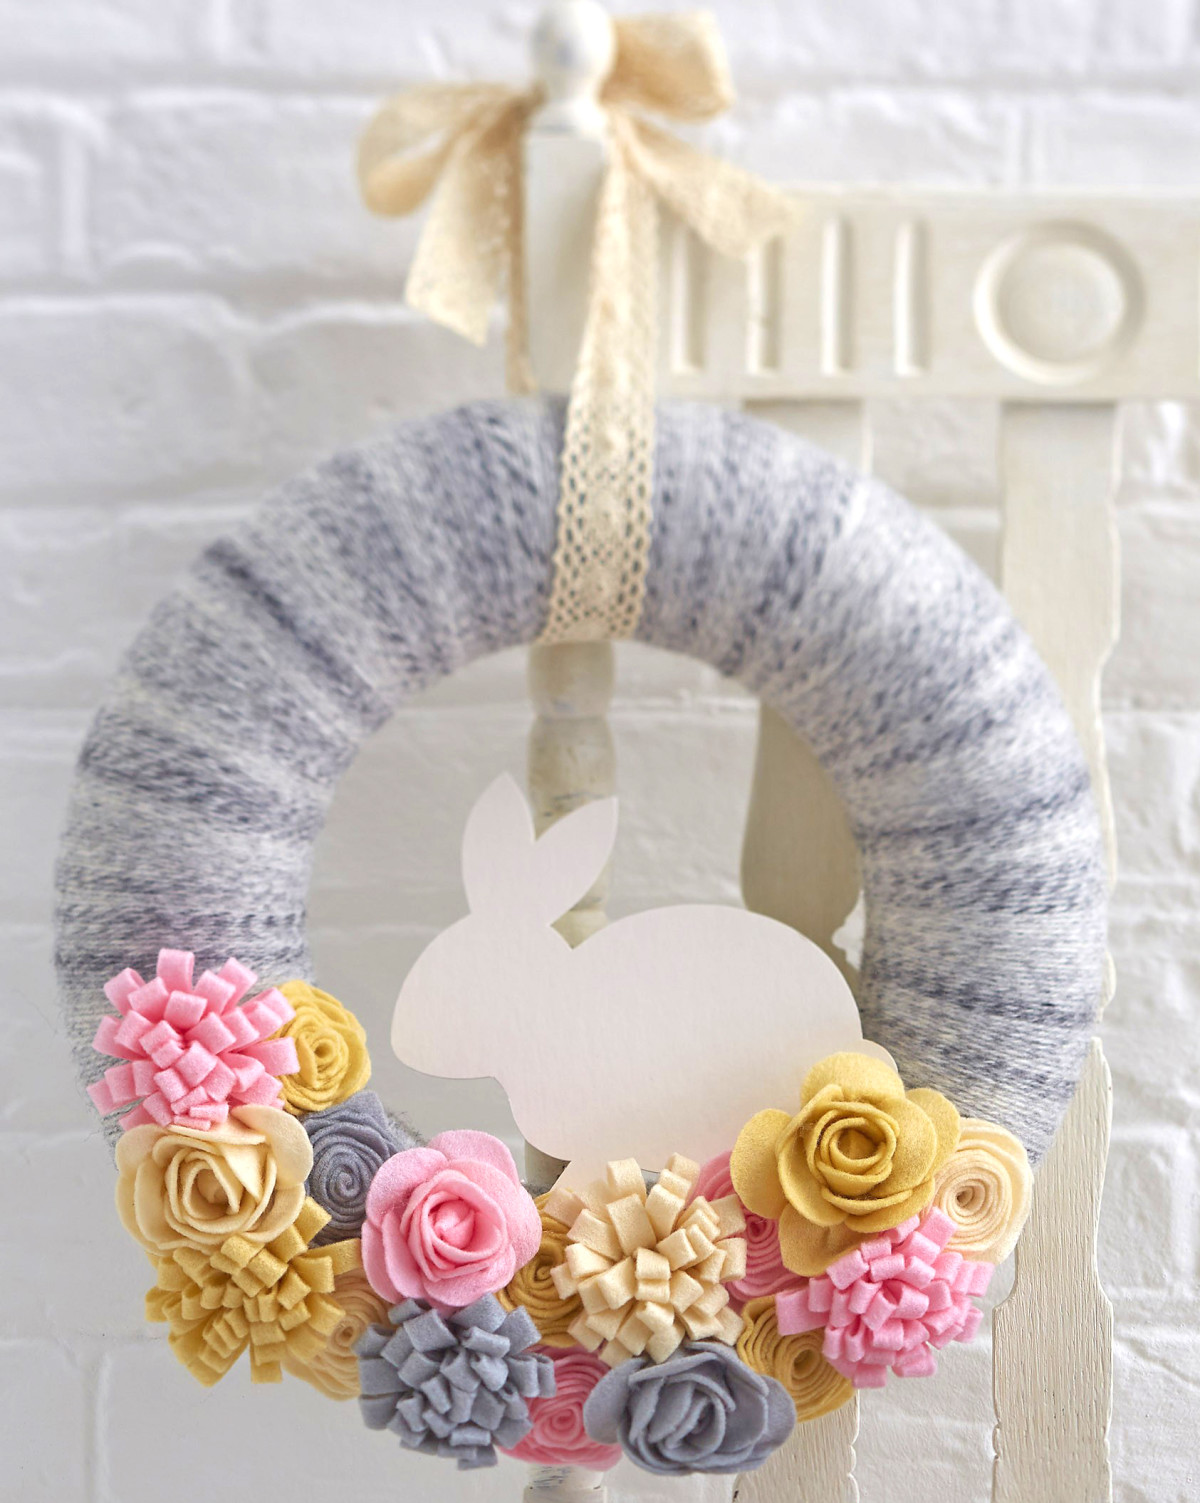 39+ DIY Spring Wreaths for the Front Door That You Can Make | Guide ...